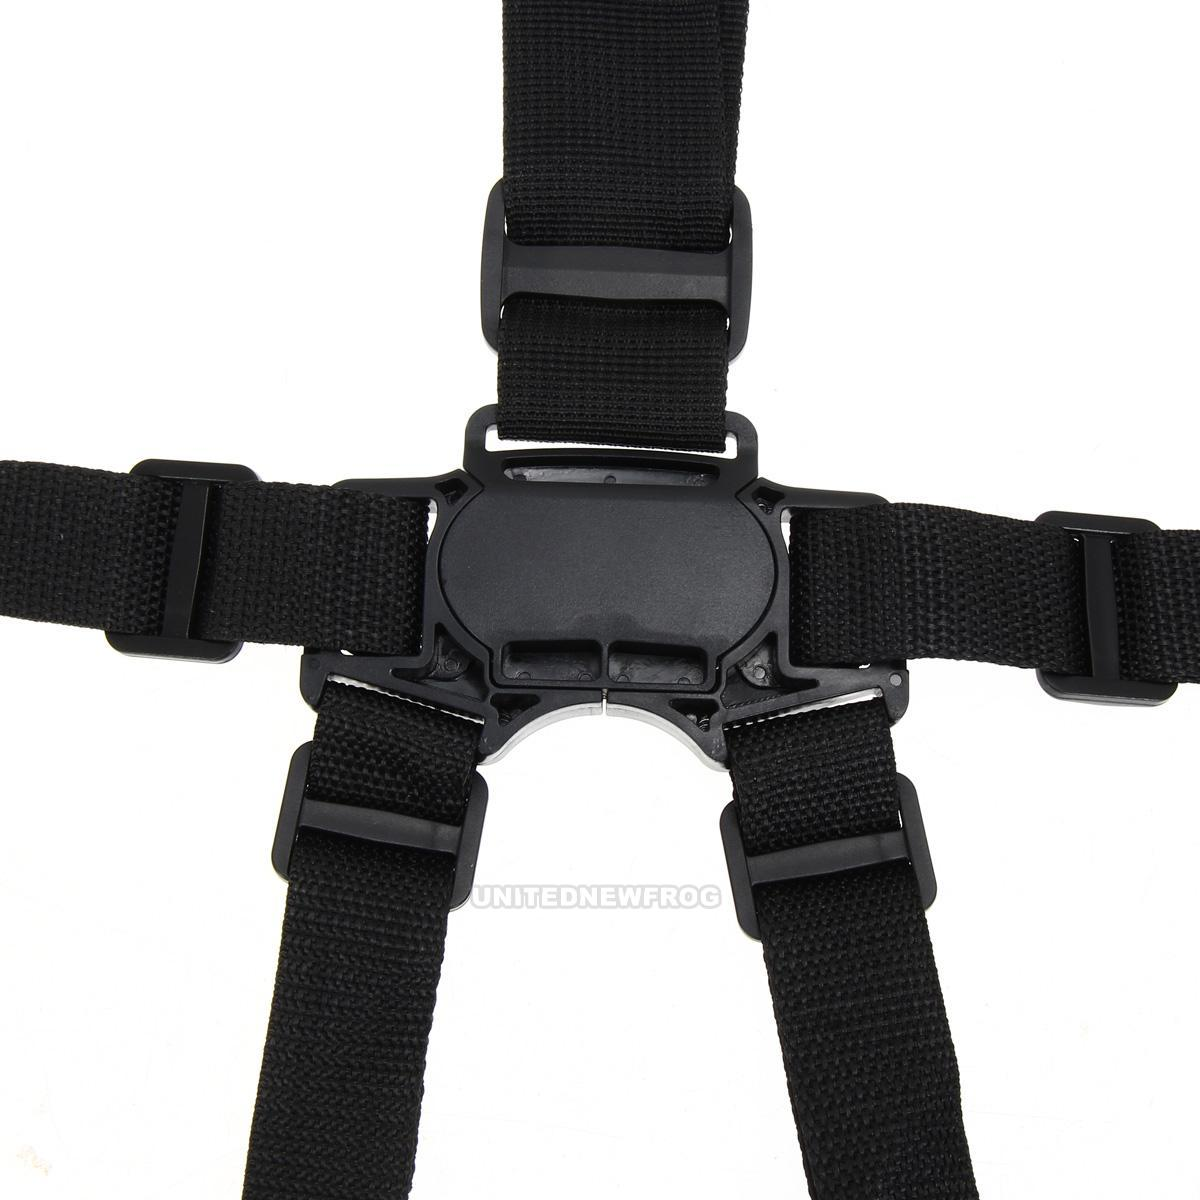 baby portable high chair safety harness wicker cushions canada 5 point strap safe belt seat belts for